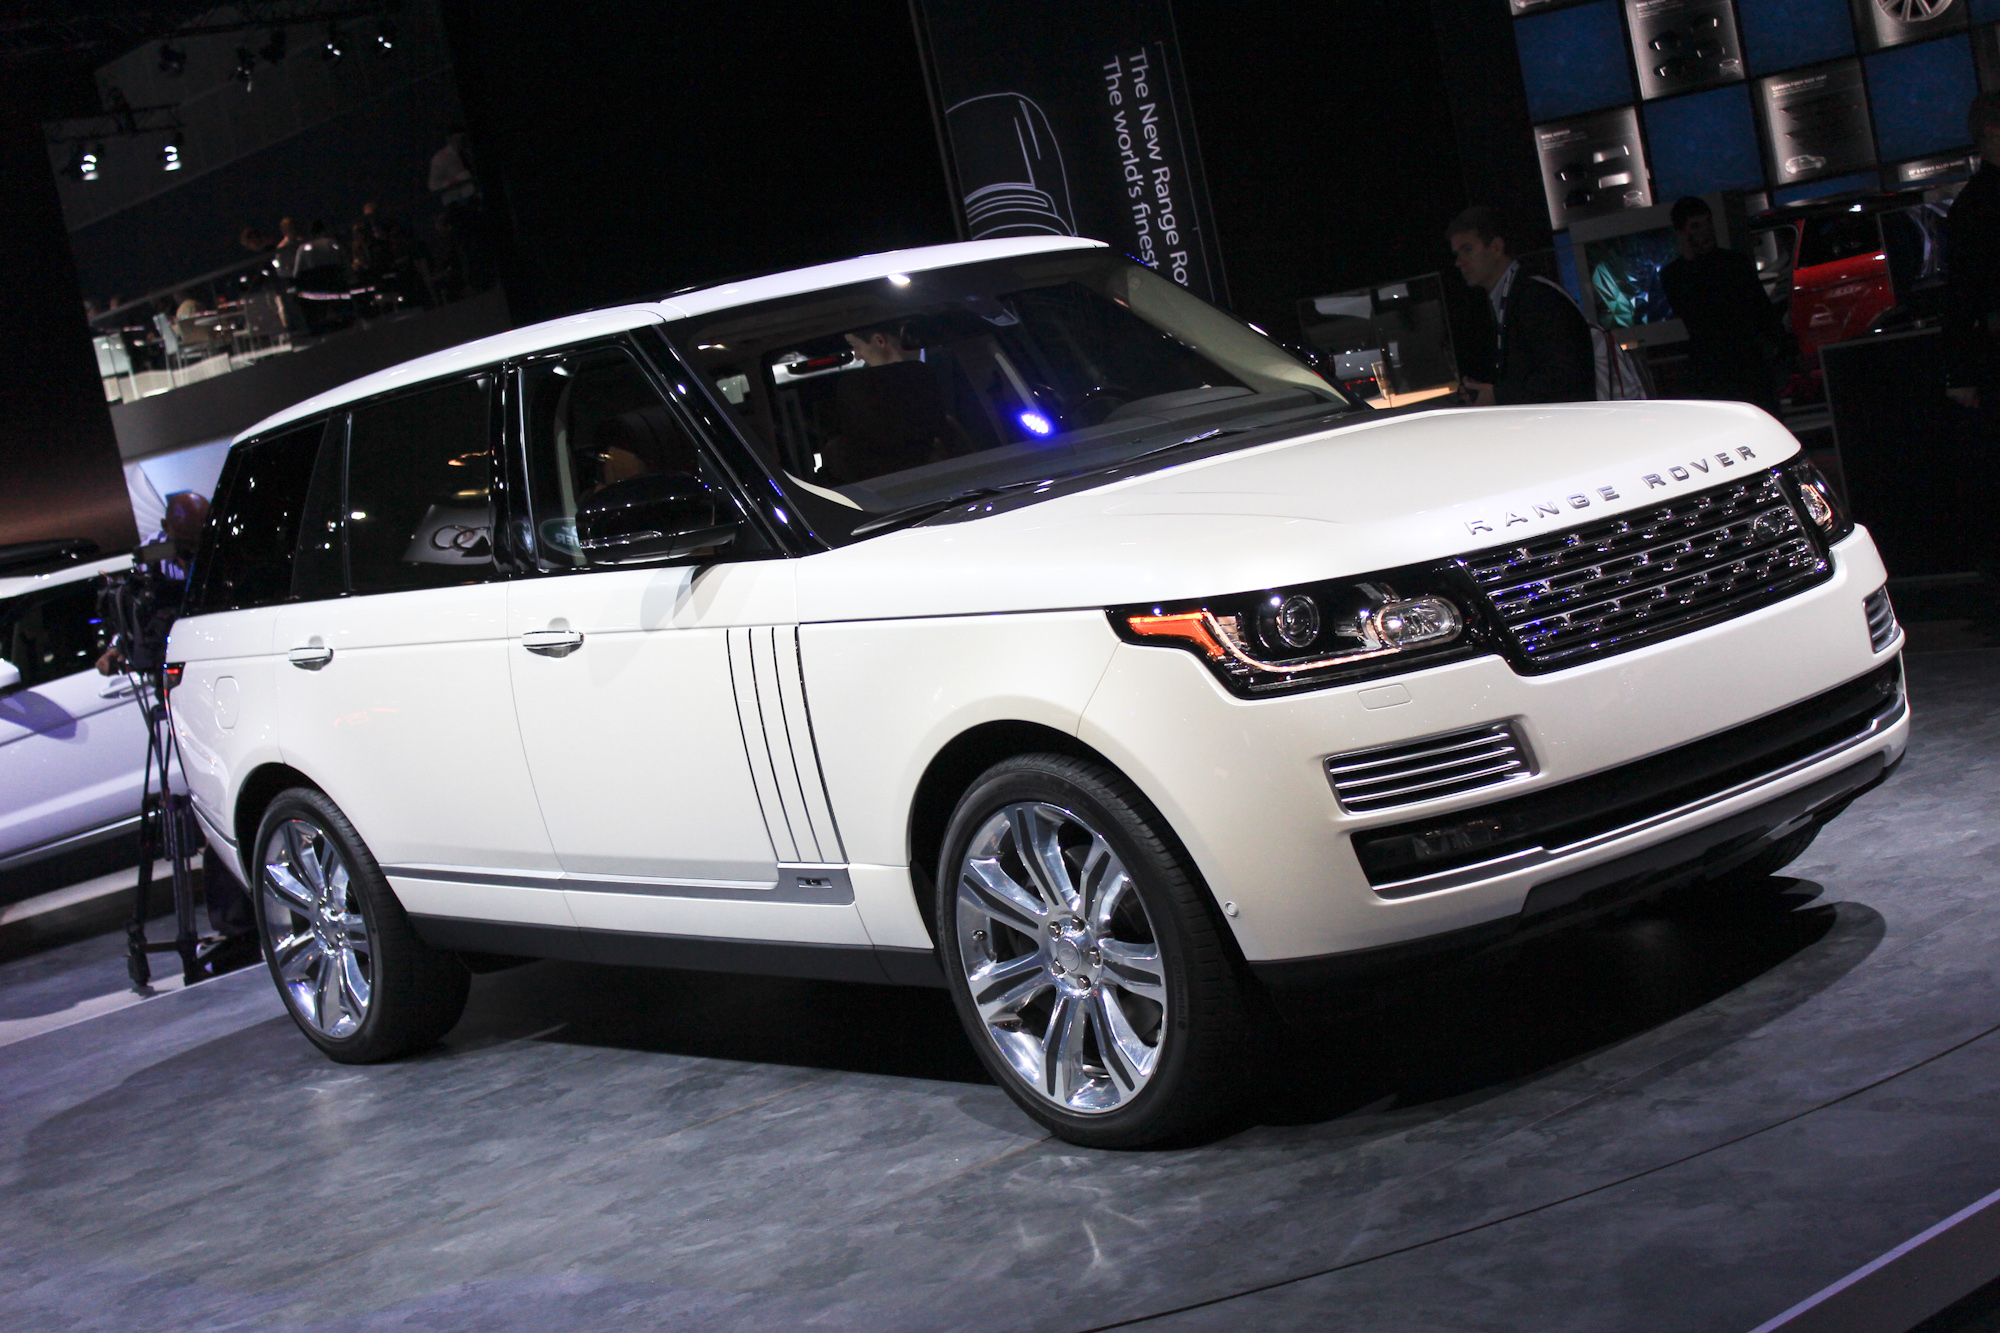 Land Rover Prices 2014 27 Free Hd Wallpaper